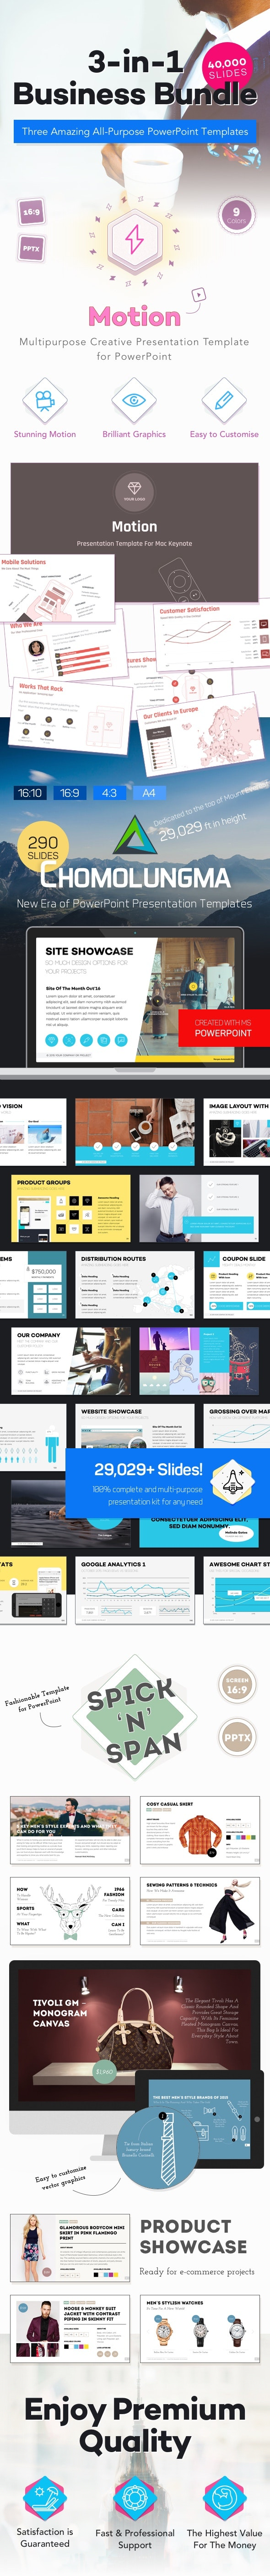 3-in-1 PowerPoint Presentation Kit for Business - Business PowerPoint Templates